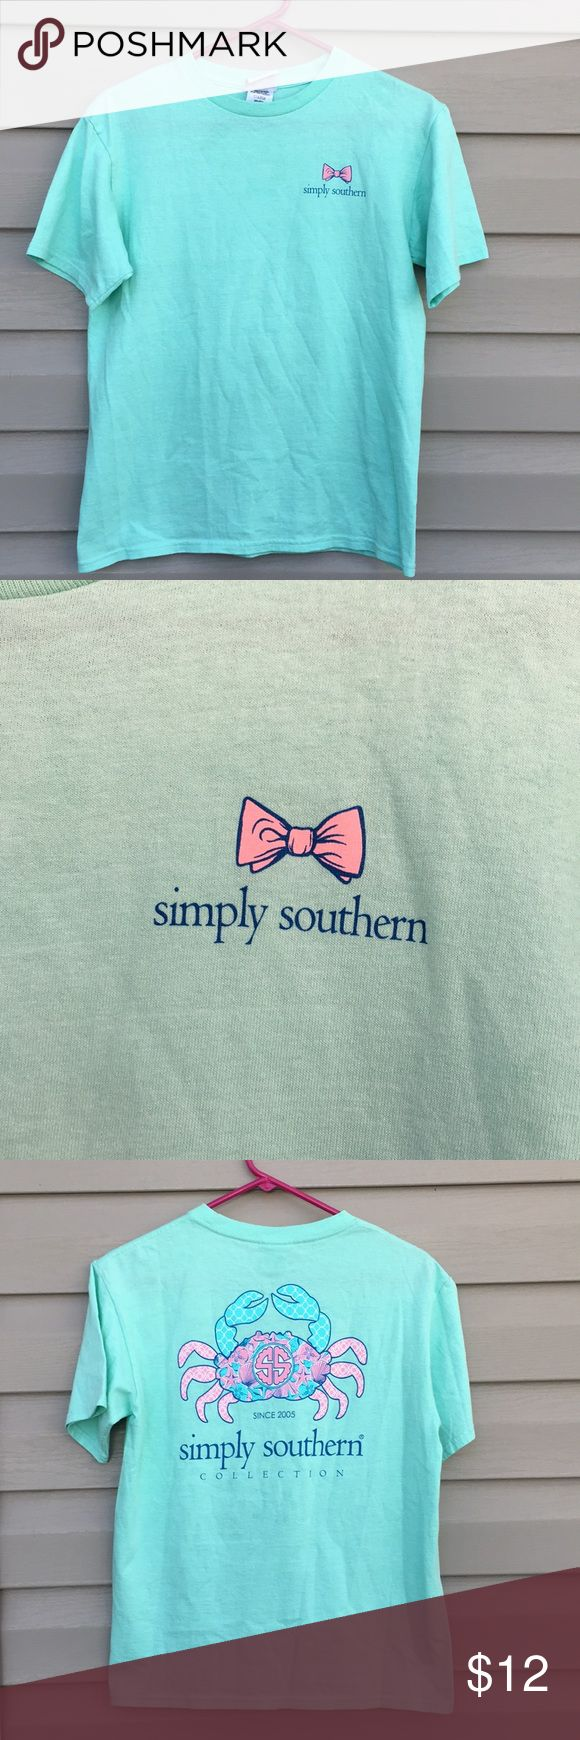 Simply Southern Girls mint green short sleeve tee Very nice girls with logo on front and back with pink and blue crab on back.100% cotton, no fading, stains or holes. EUC Simply Southern Shirts & Tops Tees - Short Sleeve